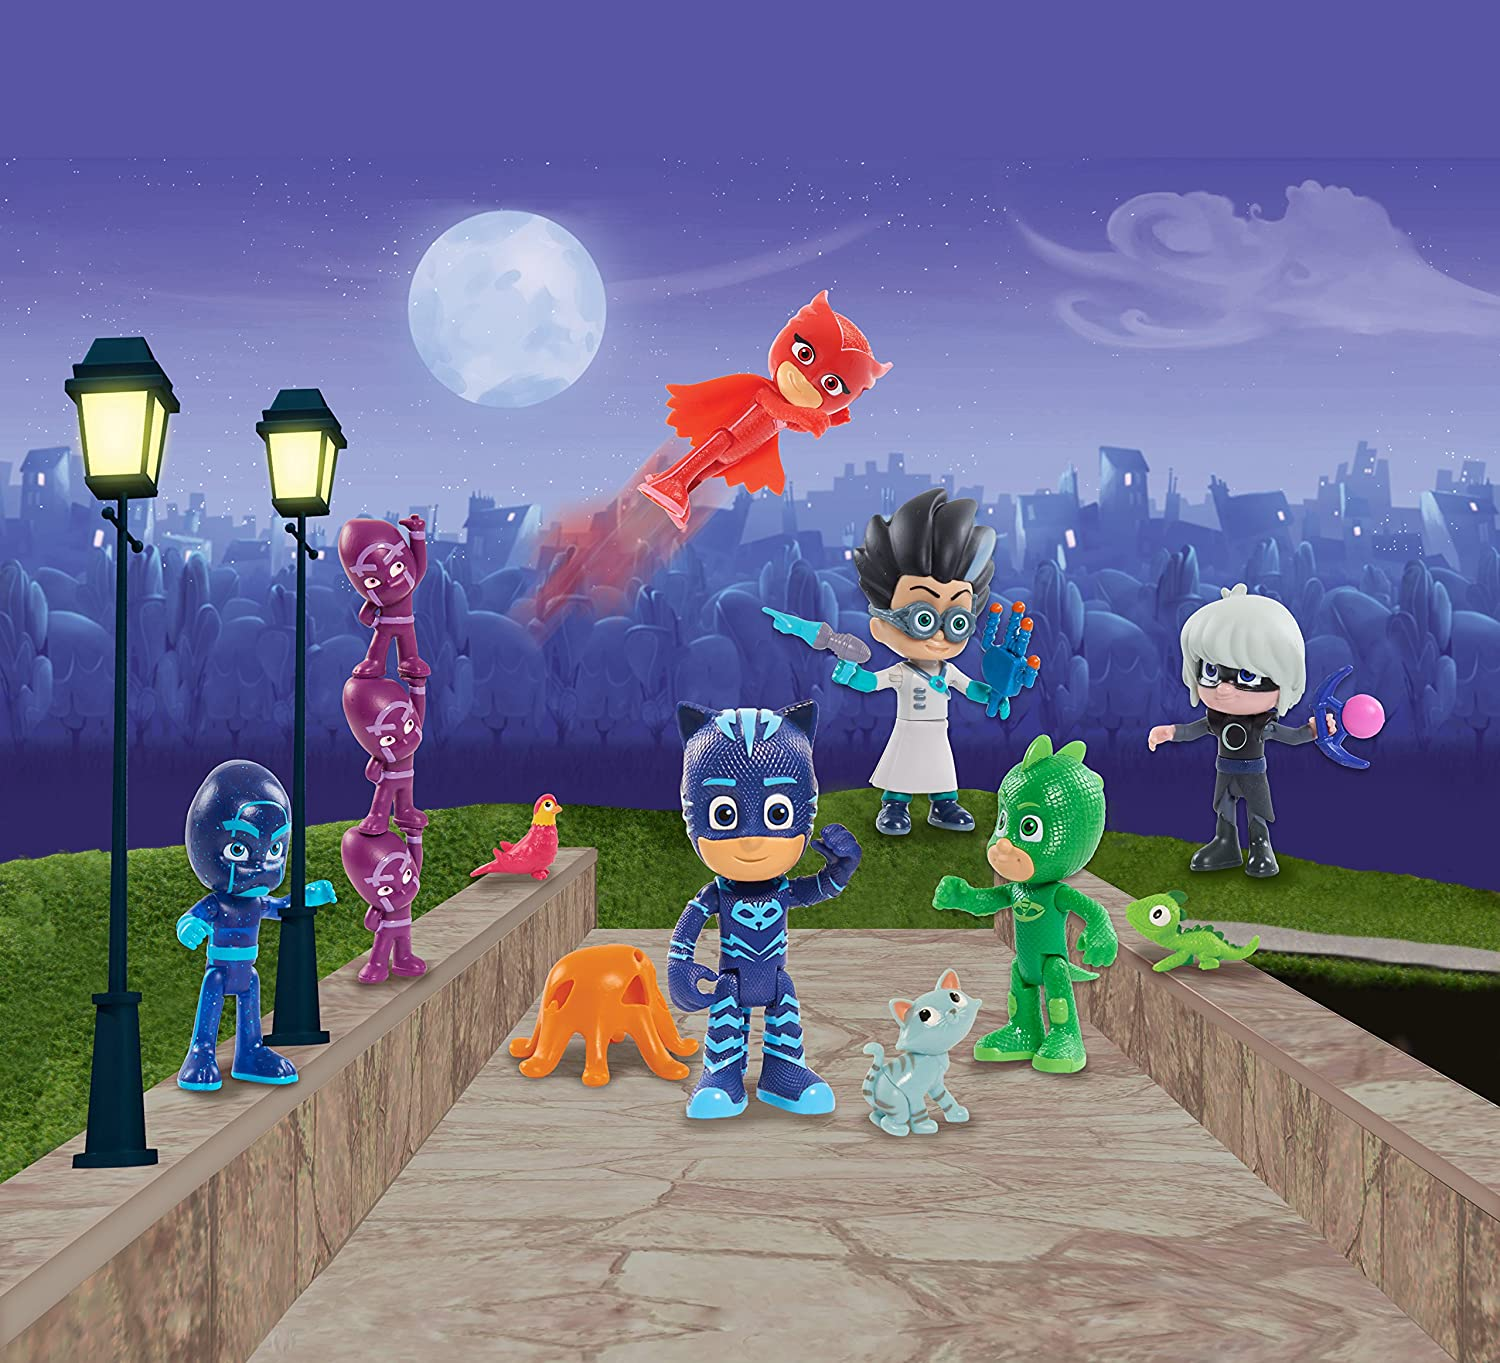 Amazon.com: Just Play PJ Masks Deluxe Friends Collection - Brown Mailer: Toys & Games